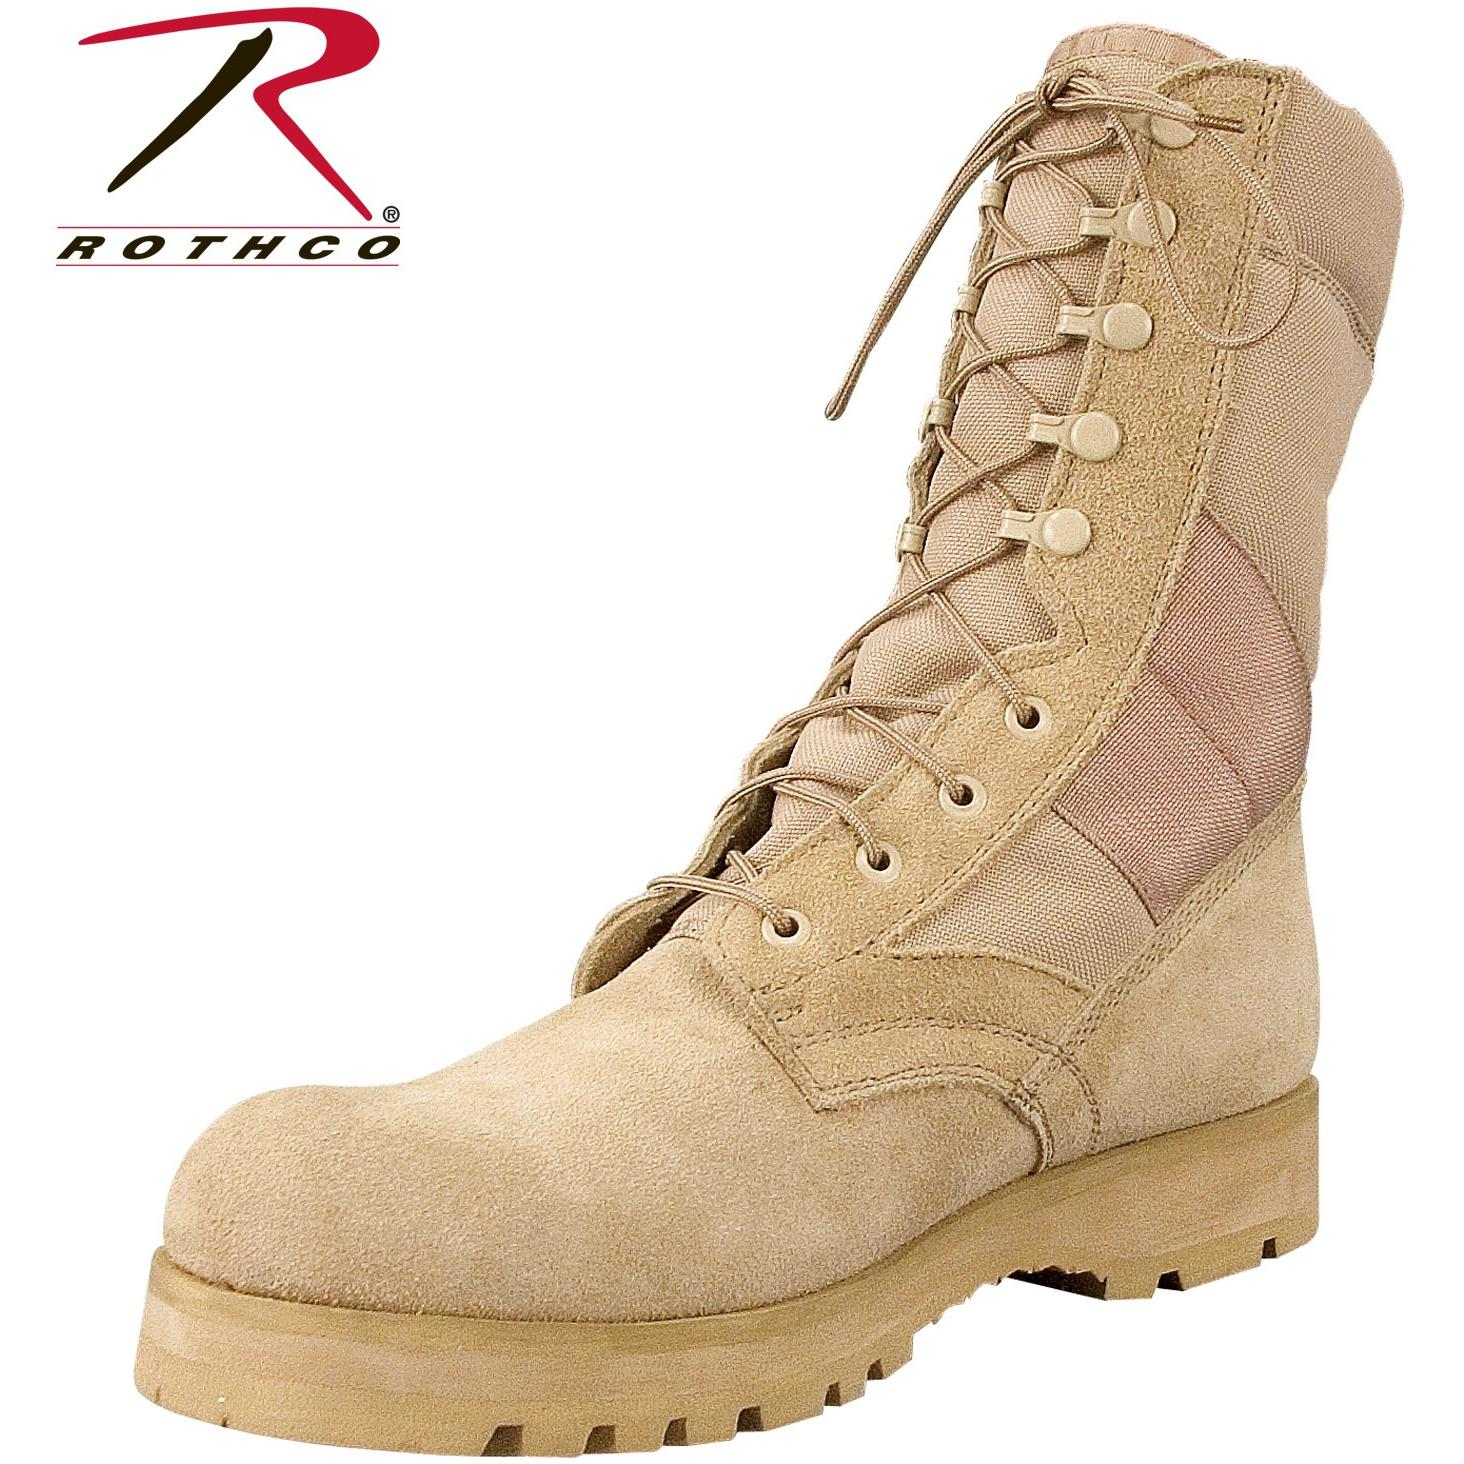 Rothco G.I. Type Sierra Sole Tactical Boots Tan 5257